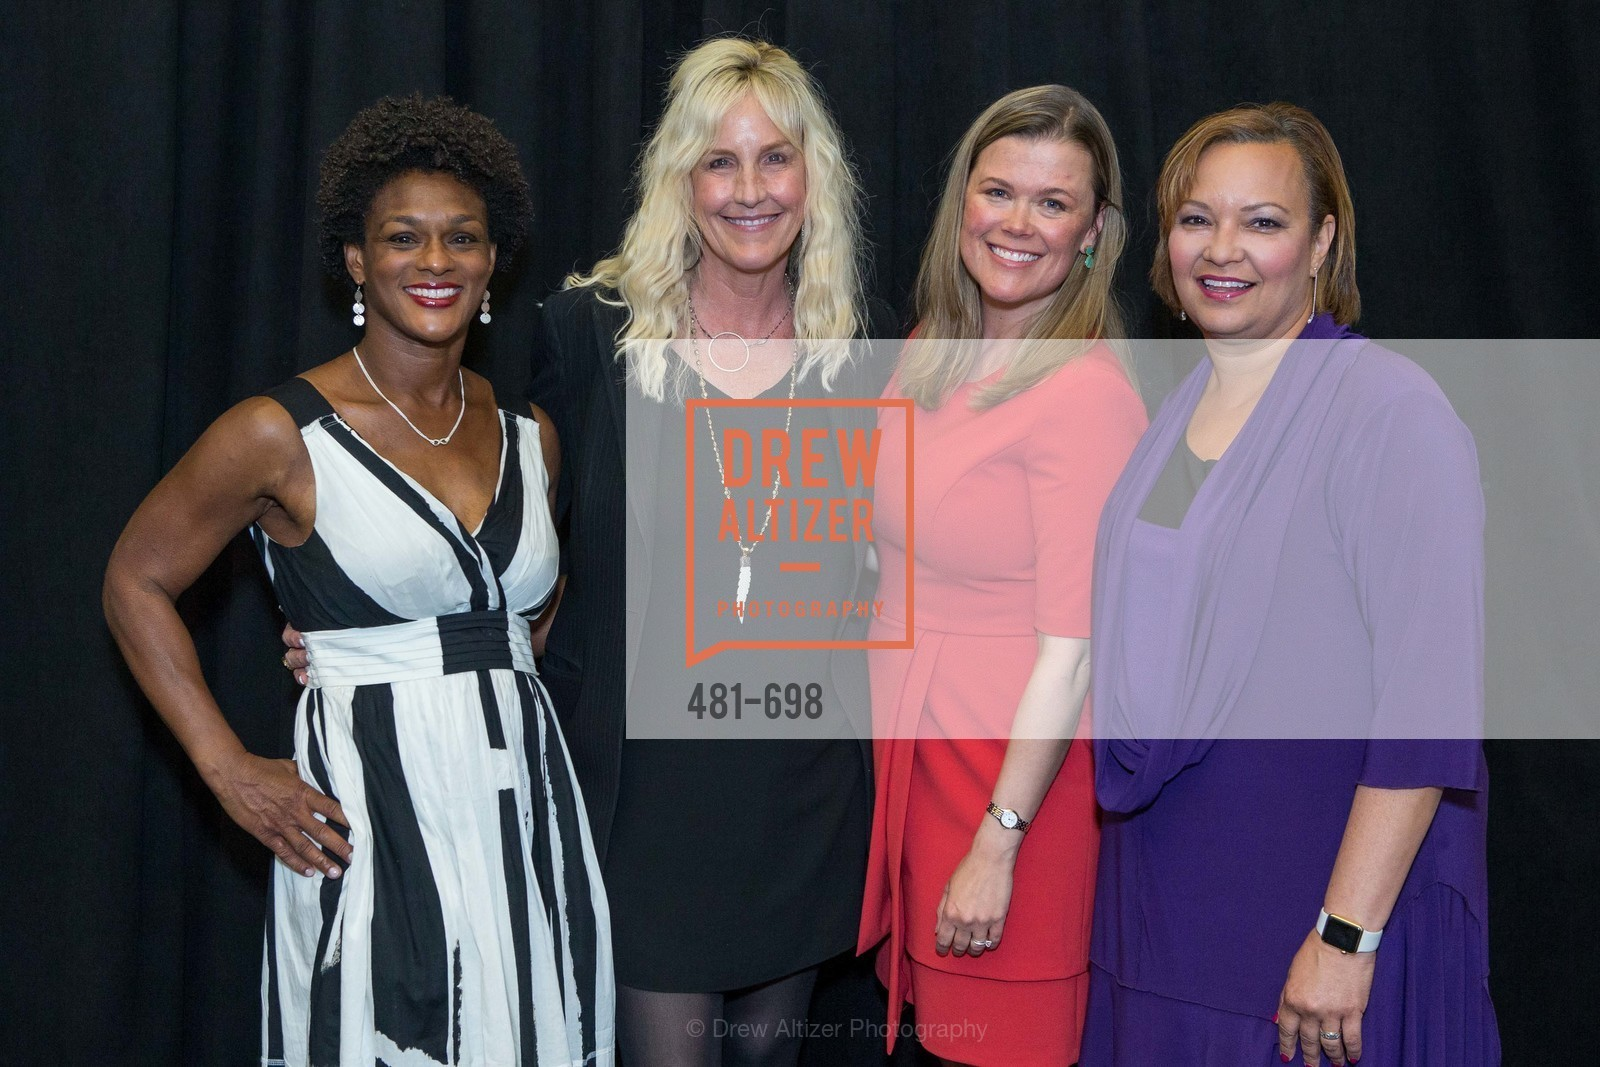 Nadine Decoteau, Erin Brockovich, Heather White, Lisa Jackson, EWG's 6th Annual Earth Dinner, US, May 6th, 2015,Drew Altizer, Drew Altizer Photography, full-service agency, private events, San Francisco photographer, photographer california